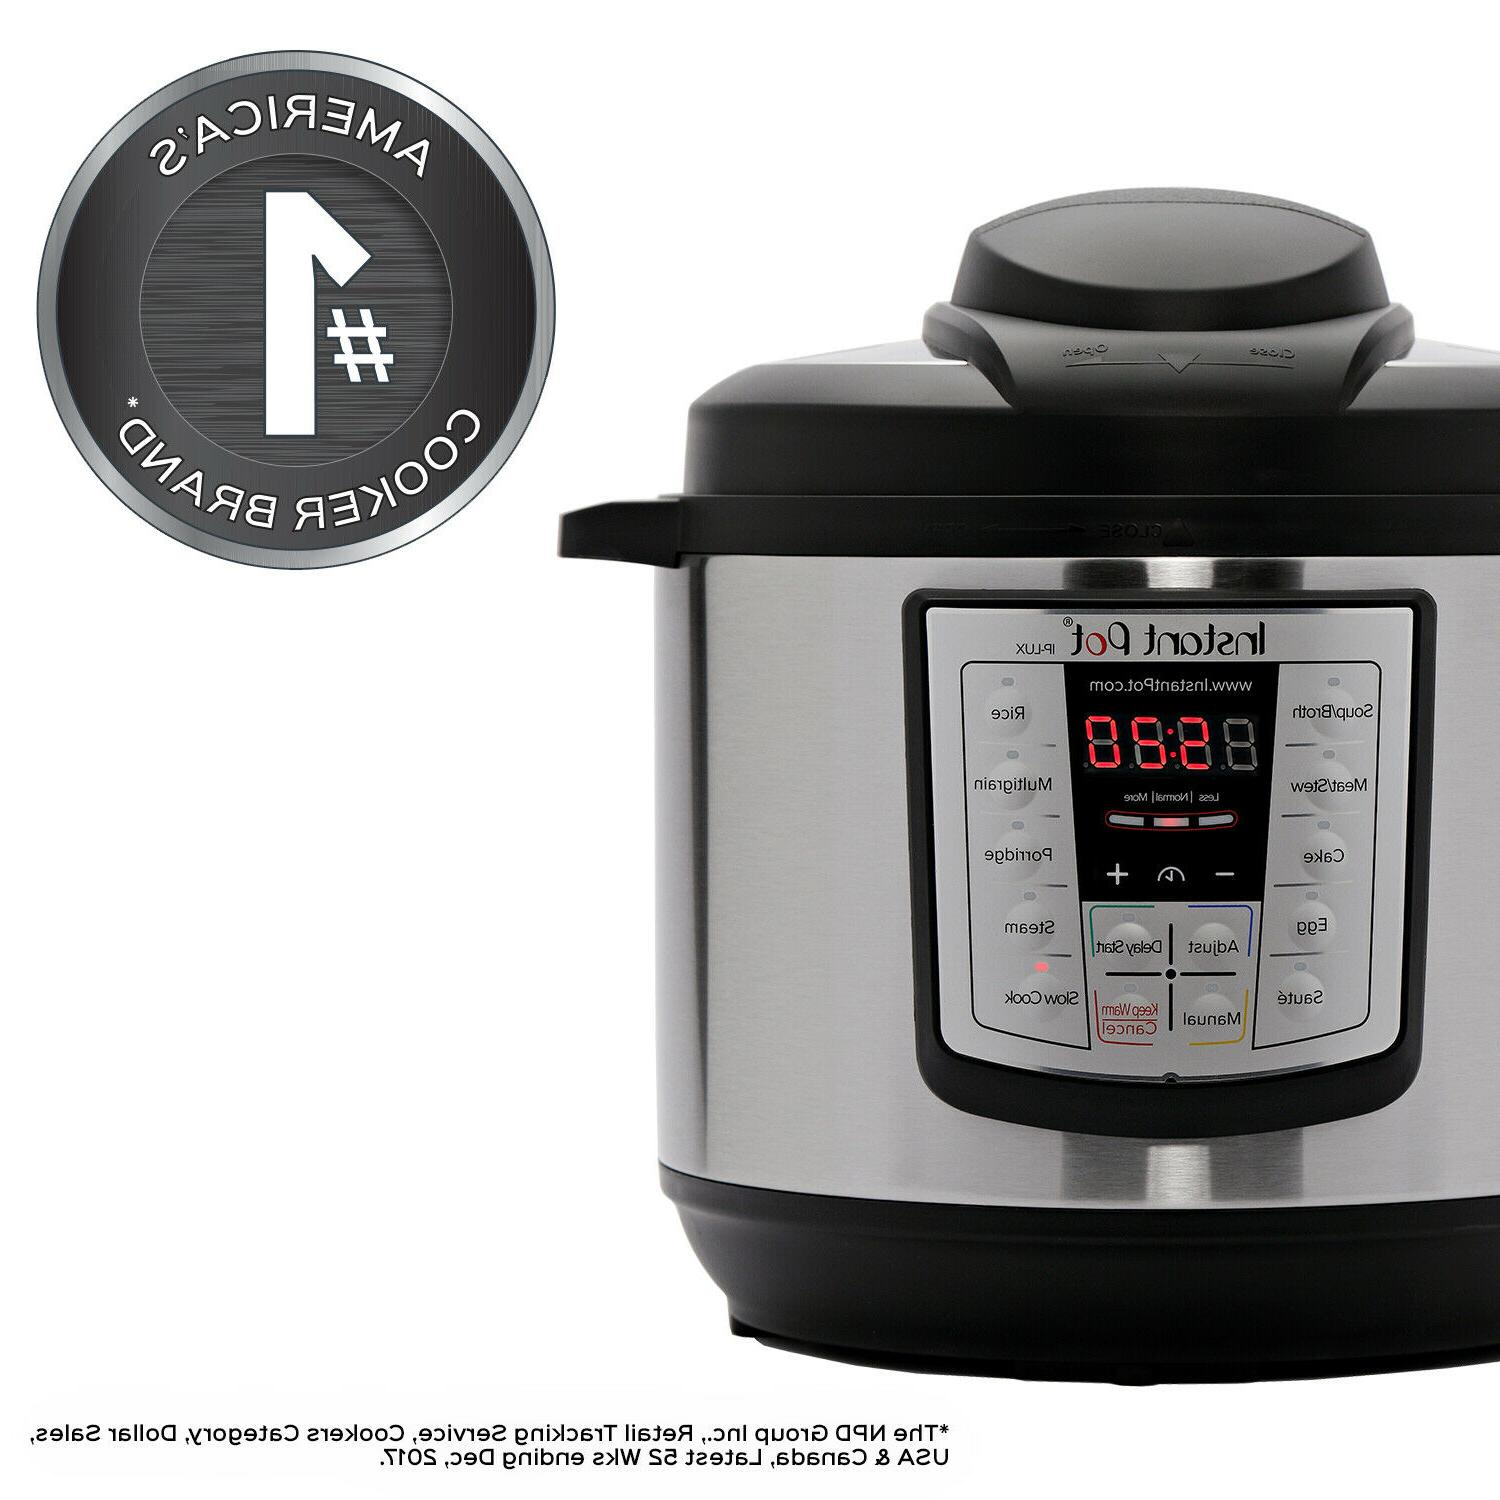 Multi-Use Programmable Slow Cooker, Quart, 6 1